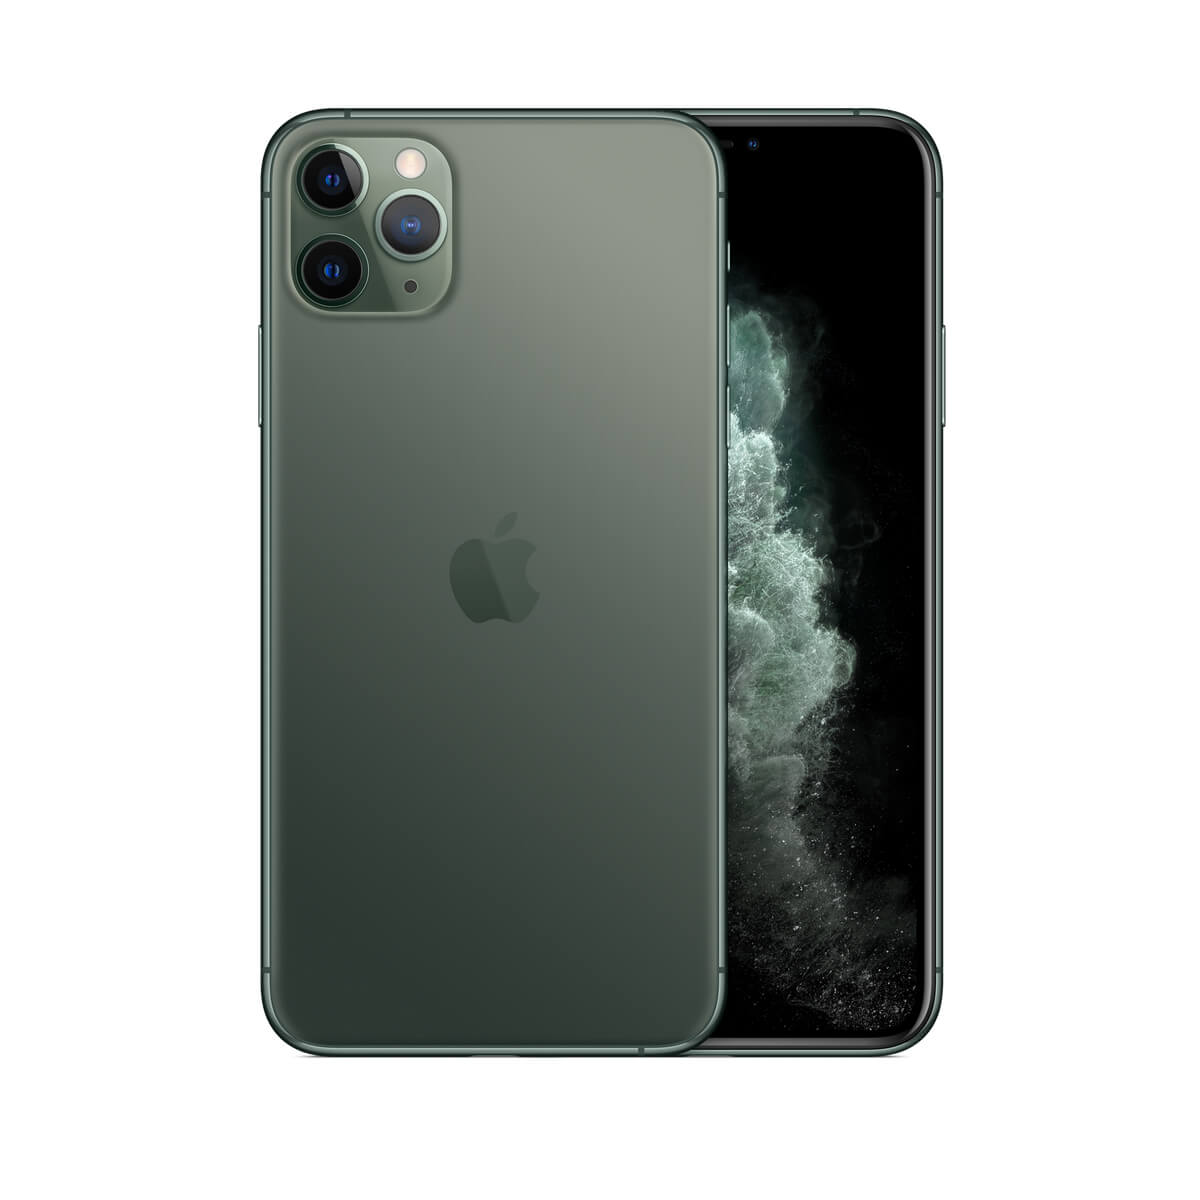 Apple iPhone 11 Pro Max (64G)